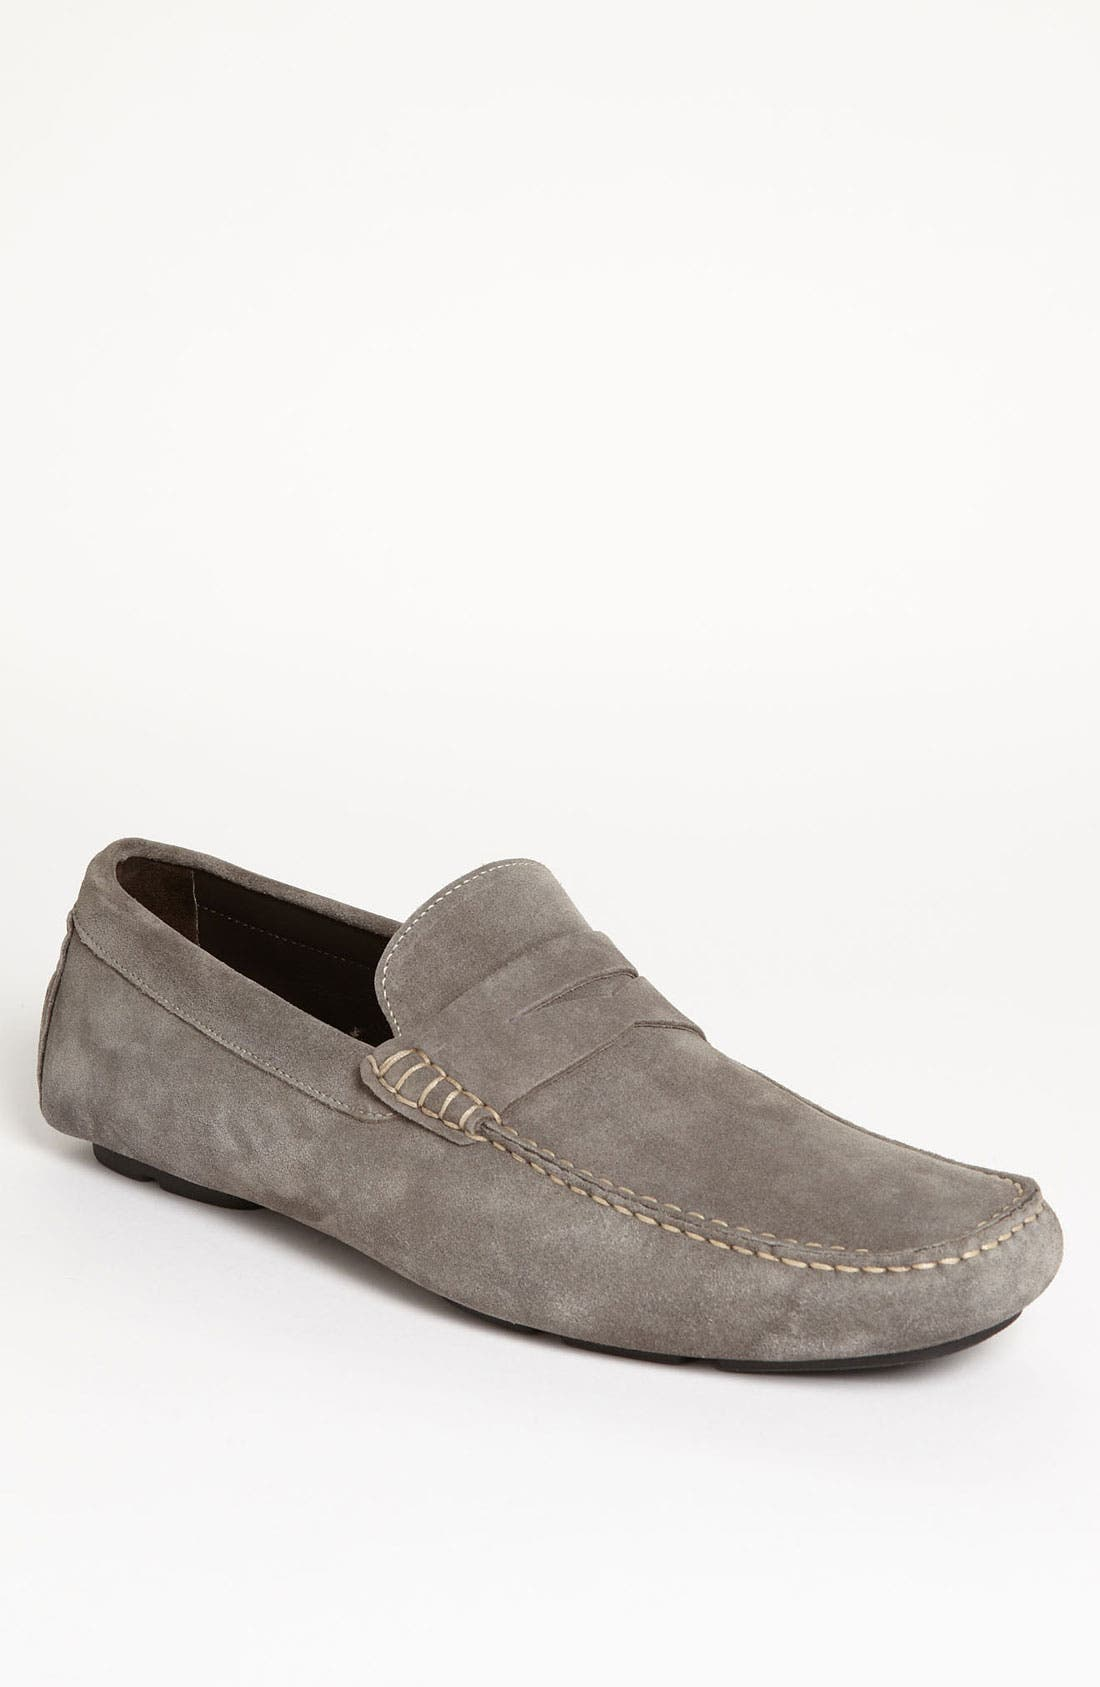 Main Image - To Boot New York 'Zach' Penny Loafer